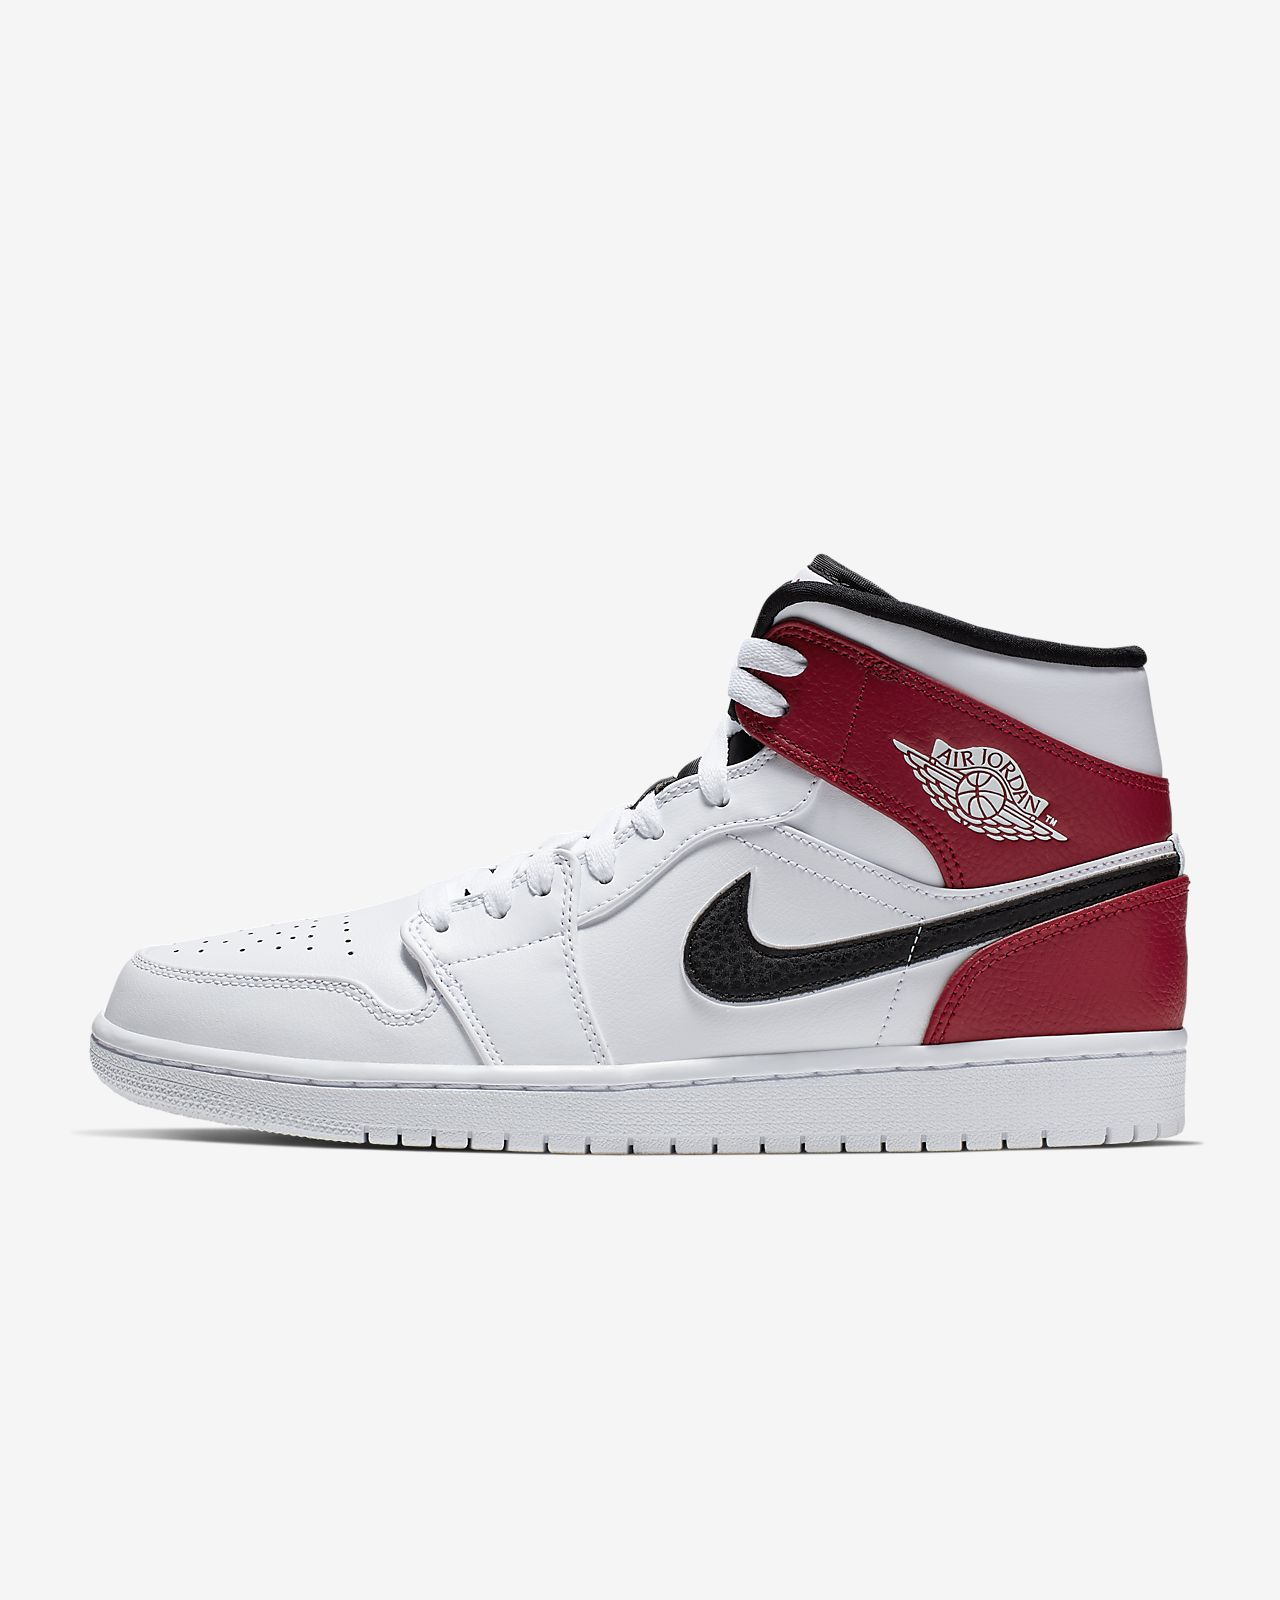 67ffd8e4daa184 Air Jordan 1 Mid Men s Shoe. Nike.com GB